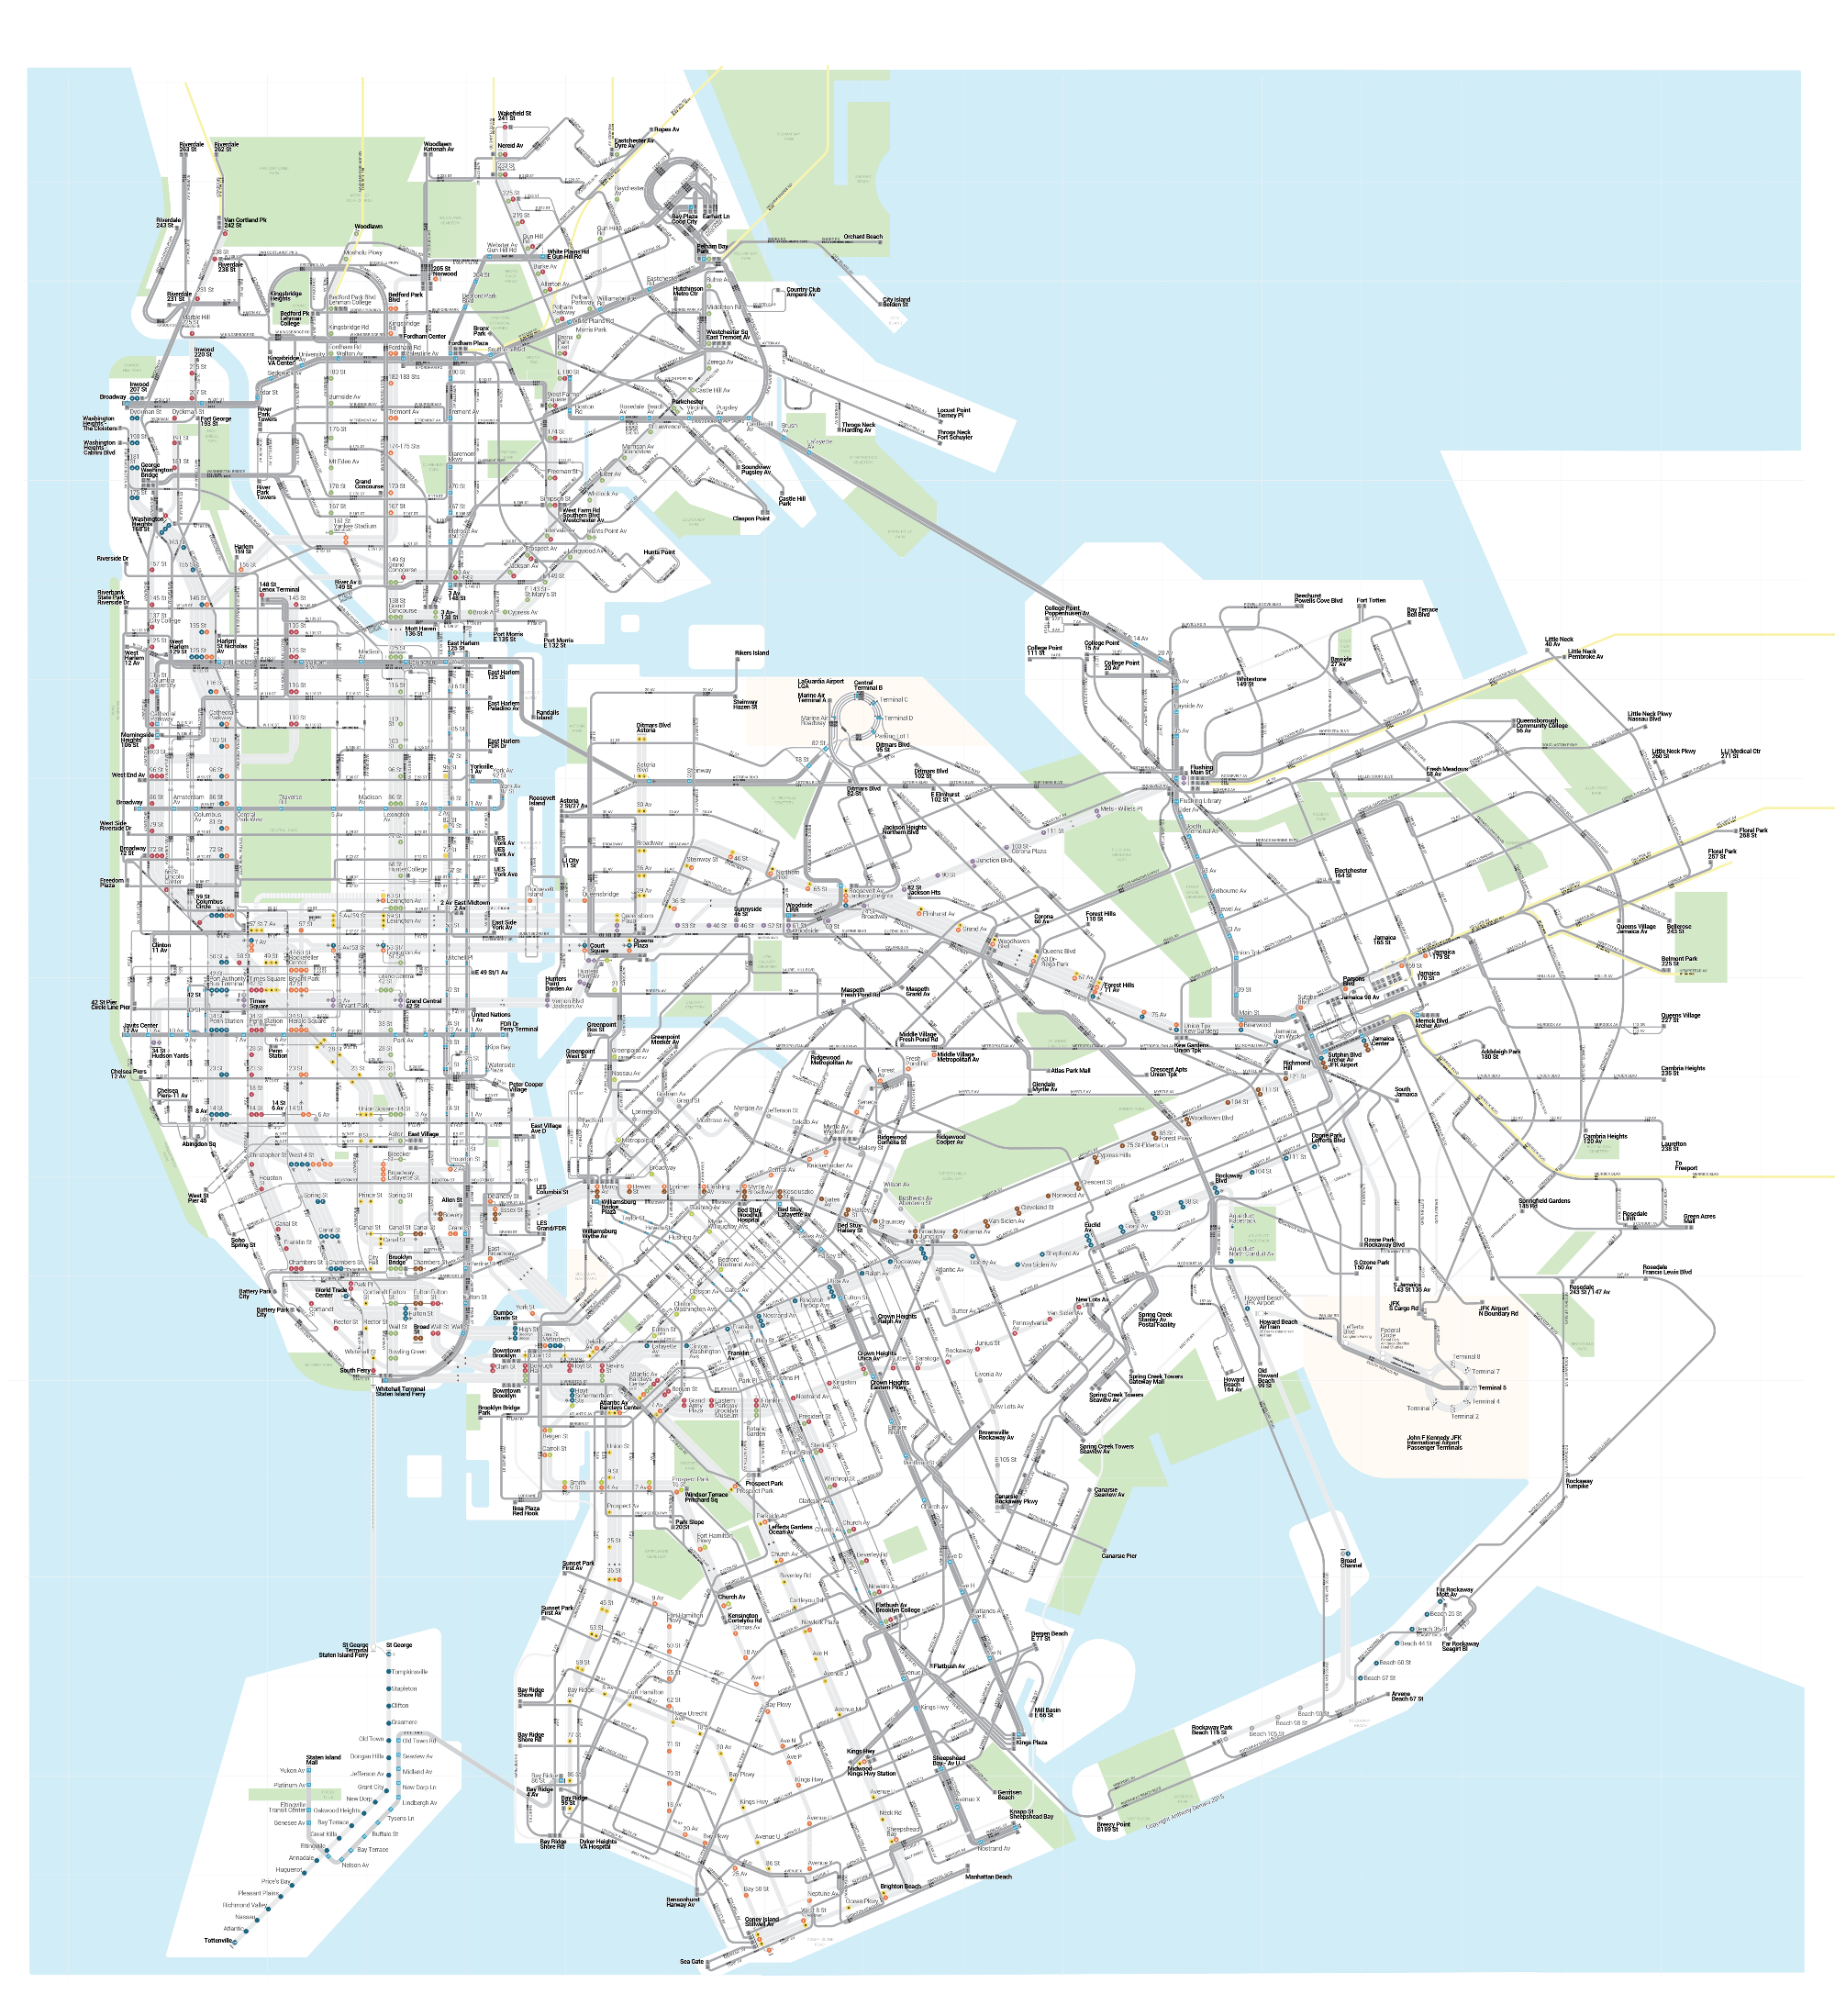 Nyc Subway Map 2000.There Are Free Transfers Between The New York Subway And The City S